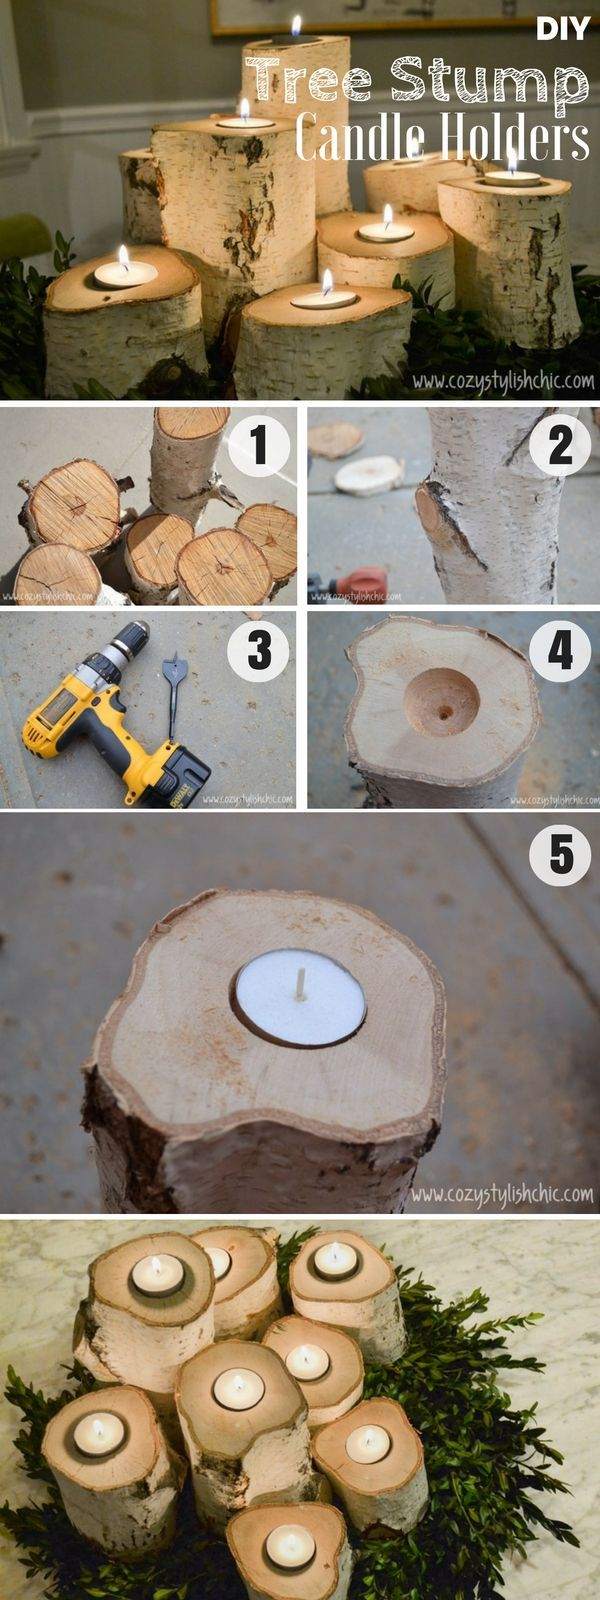 best 25 candle holder decor ideas on pinterest diy candle